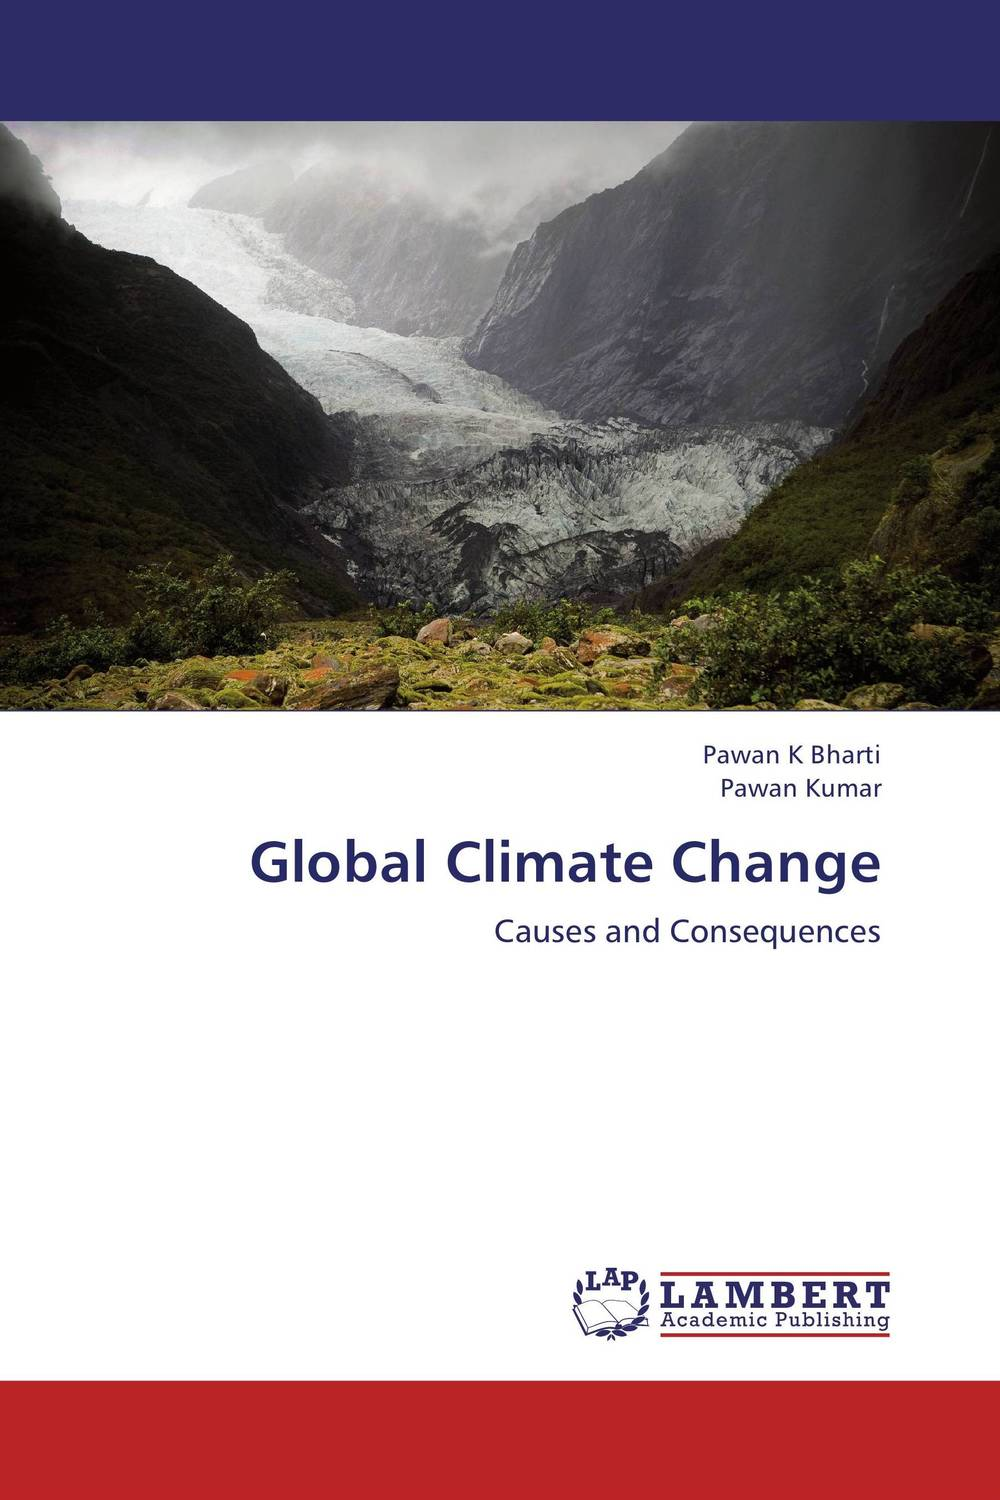 Global Climate Change spirituality and climate change